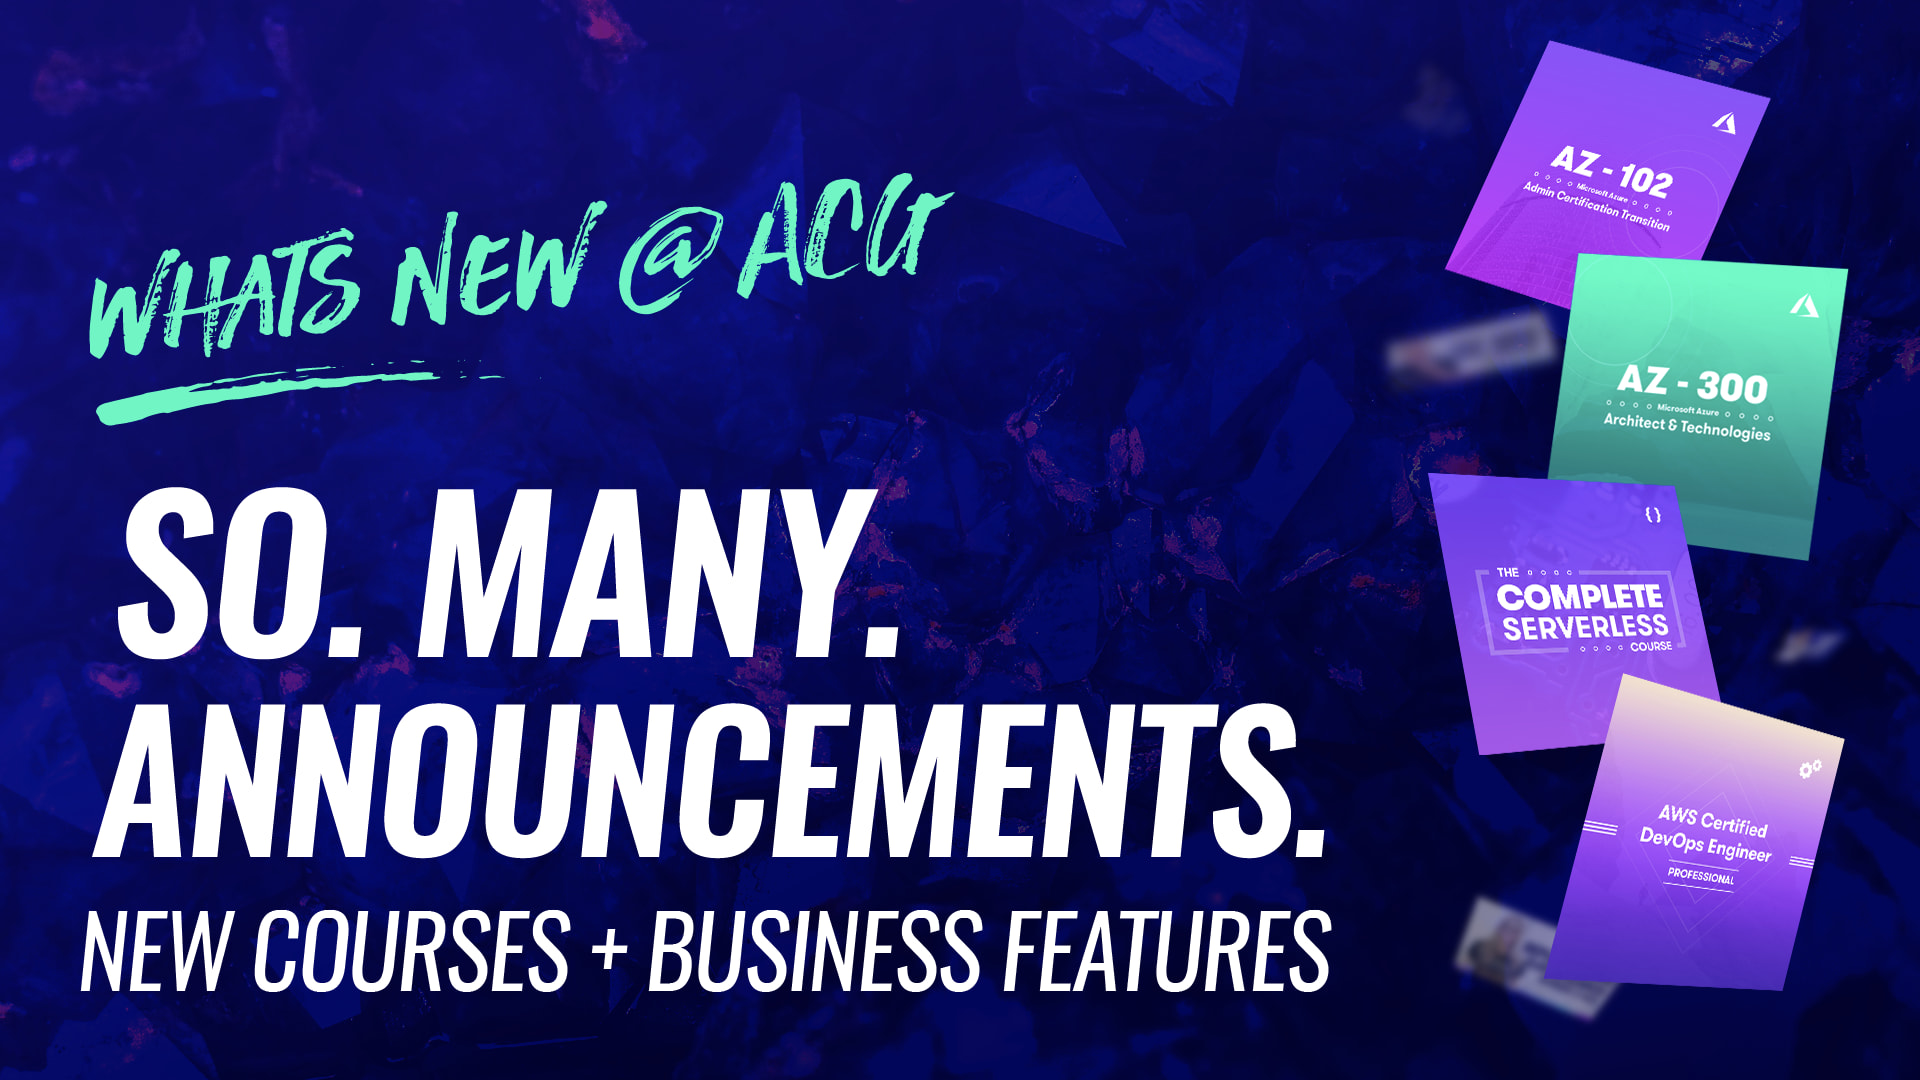 whats new @ acg - so many announcements new courses plus business features